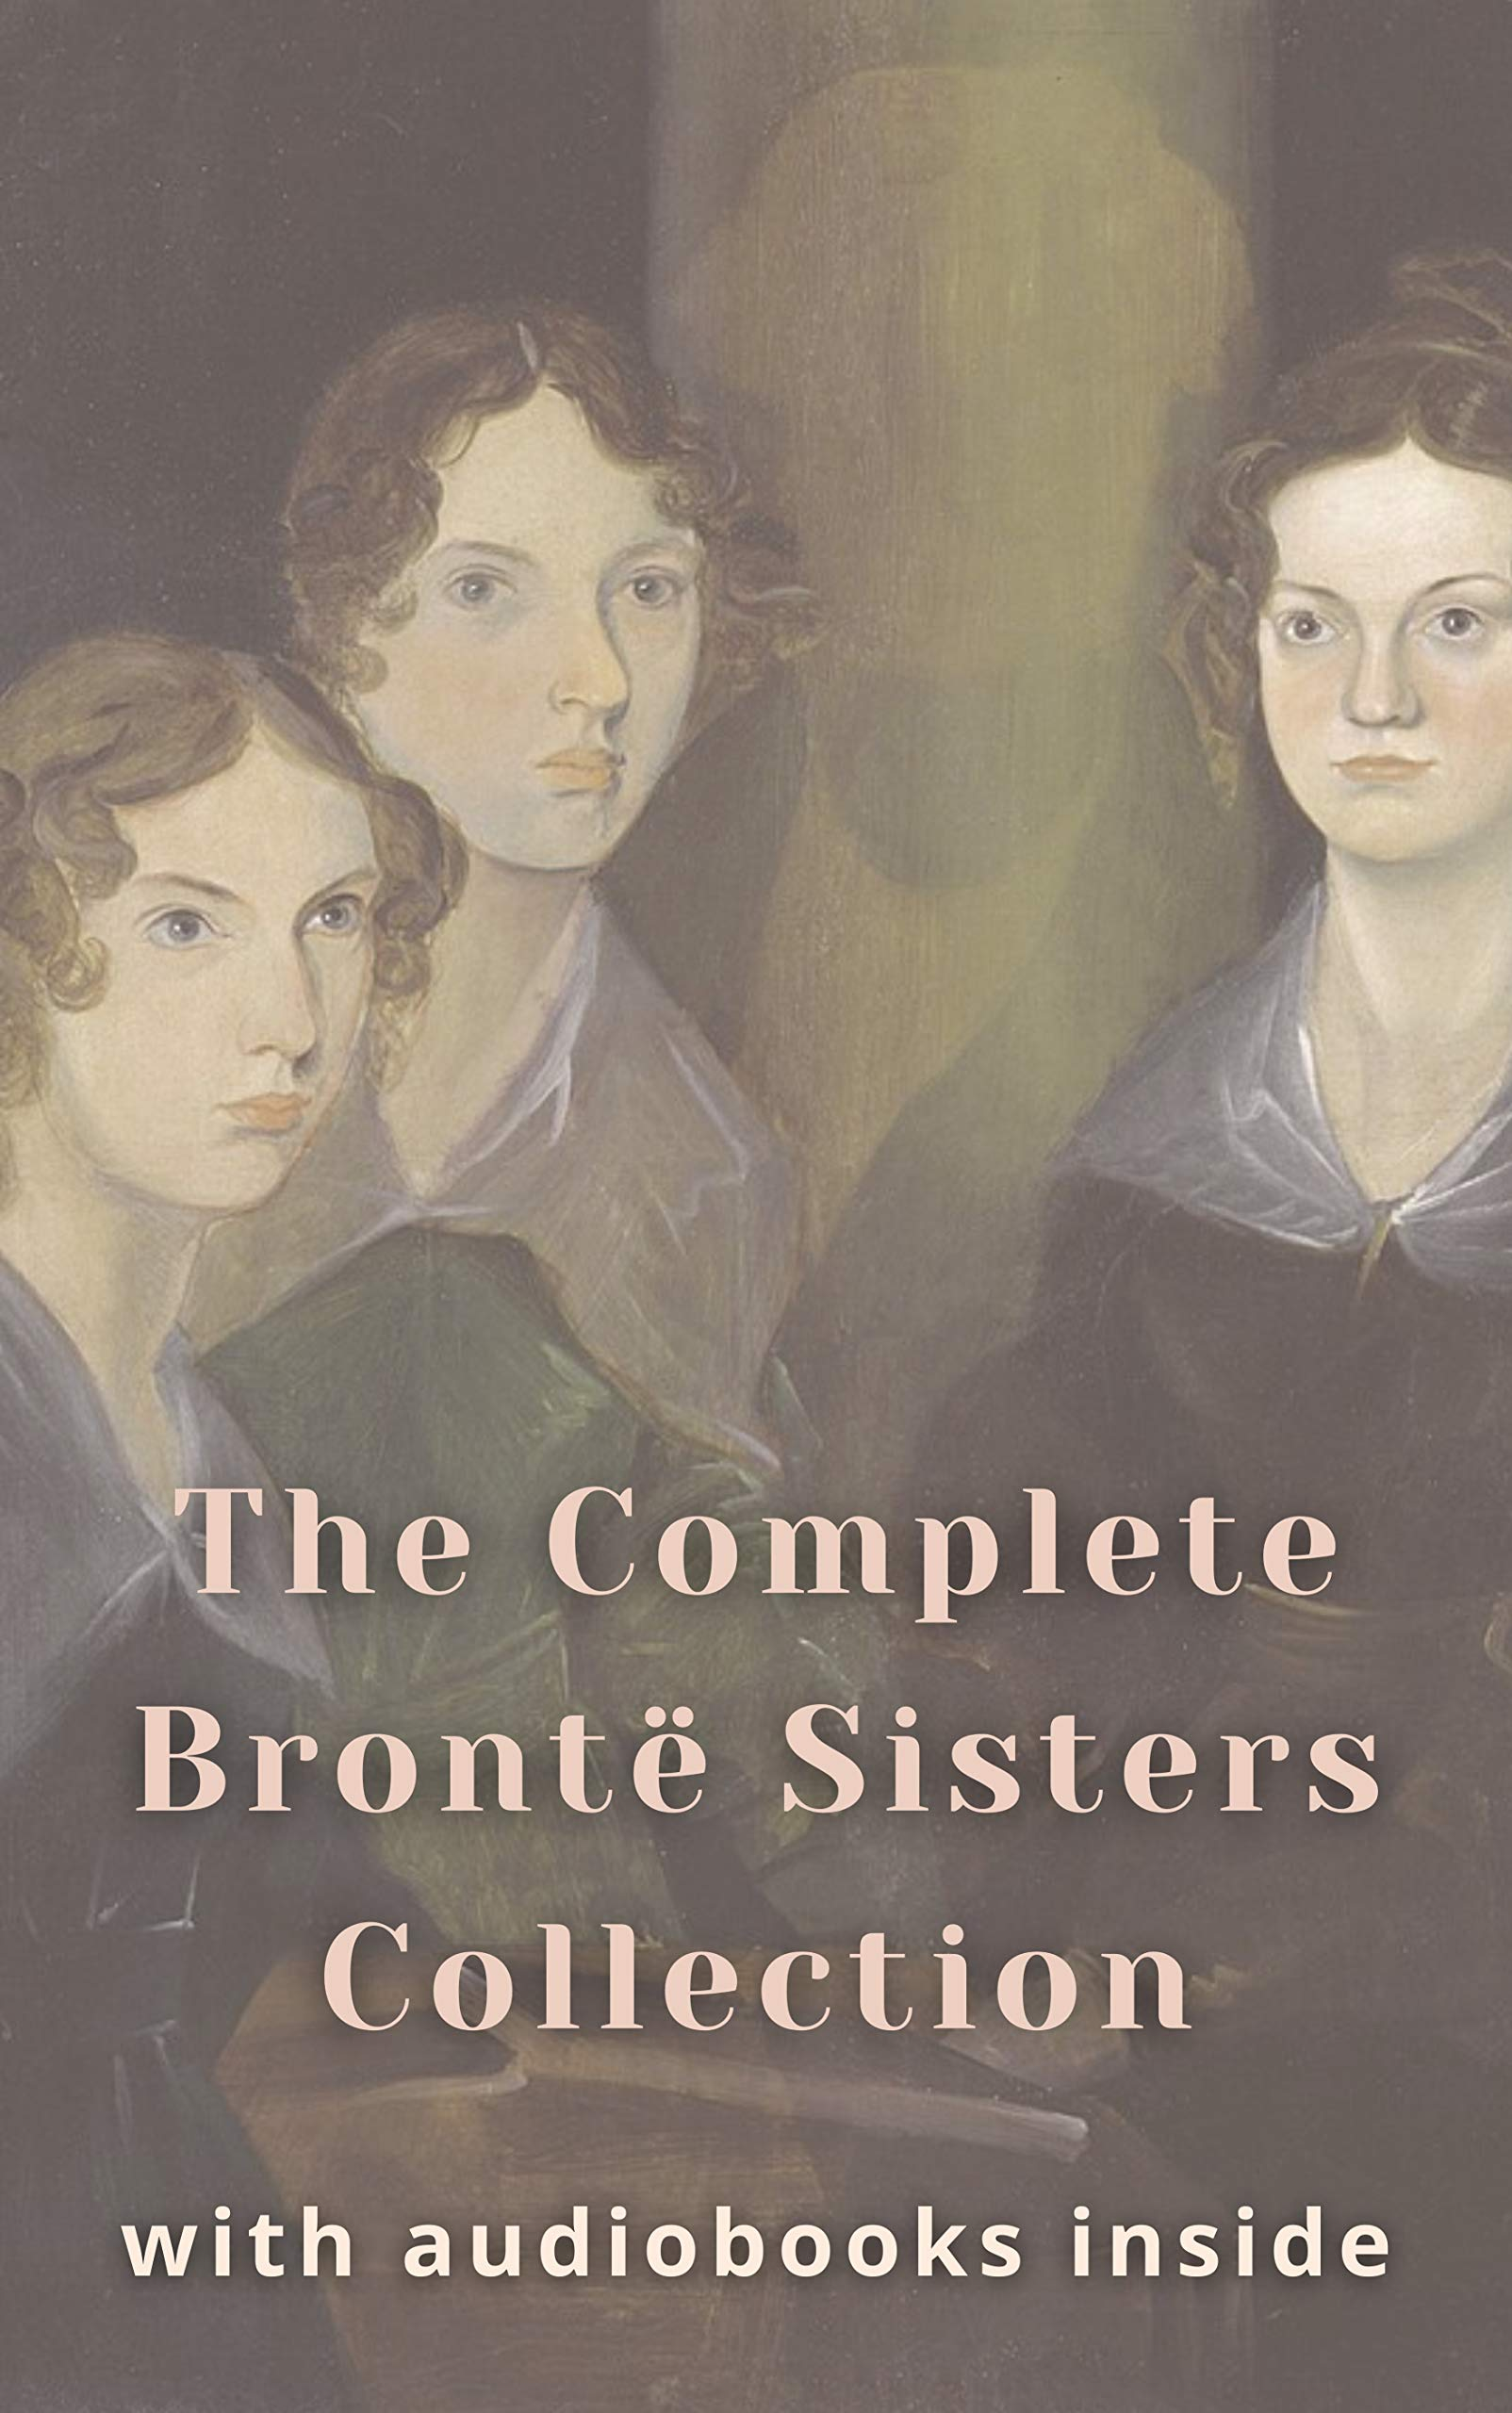 The complete Brontë sisters collection (7 books): Jane Eyre, Villette, Shirley, The Professor, Wuthering Heights, The Tenant of Wildfell Hall, Agnes Grey - WITH AUDIOBOOKS INSIDE